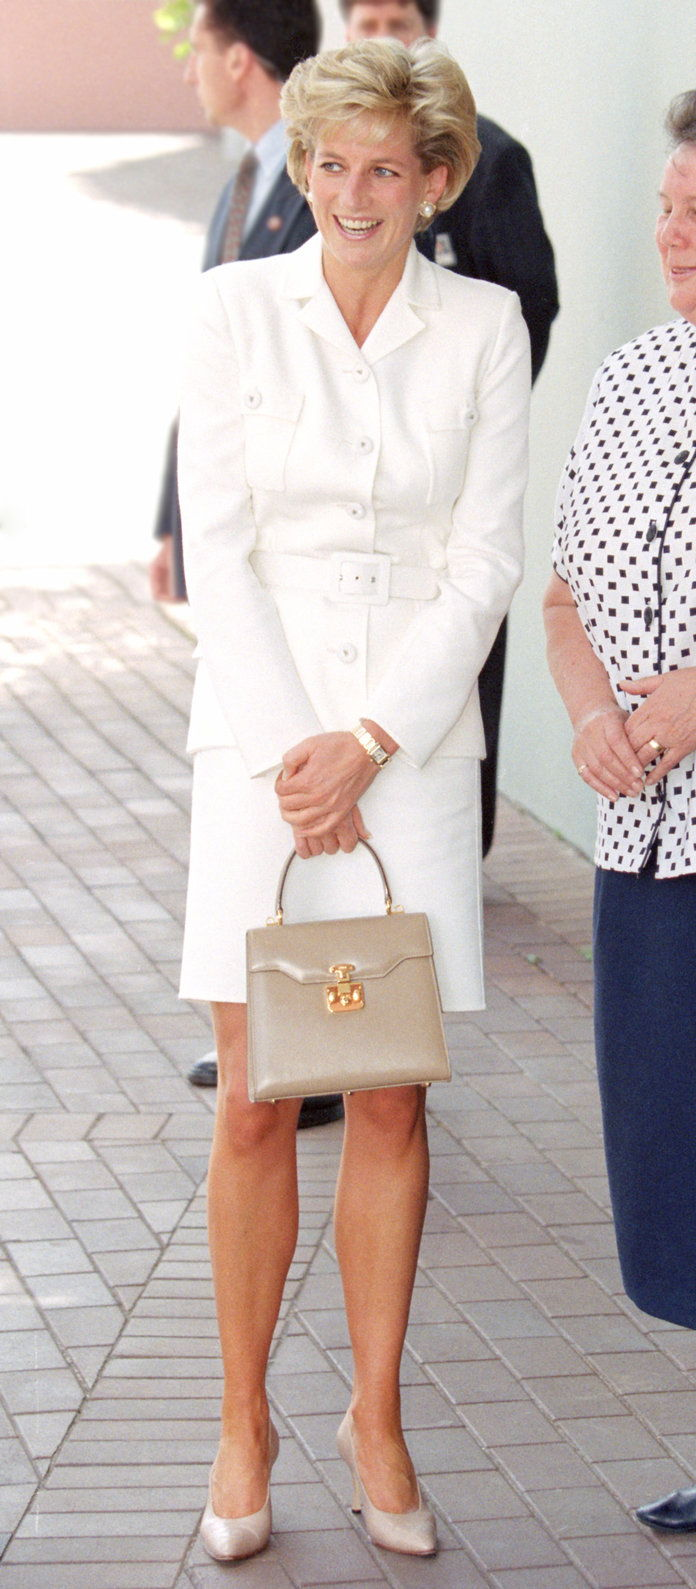 戴安娜, Princess Of Wales In Sydney, Australia